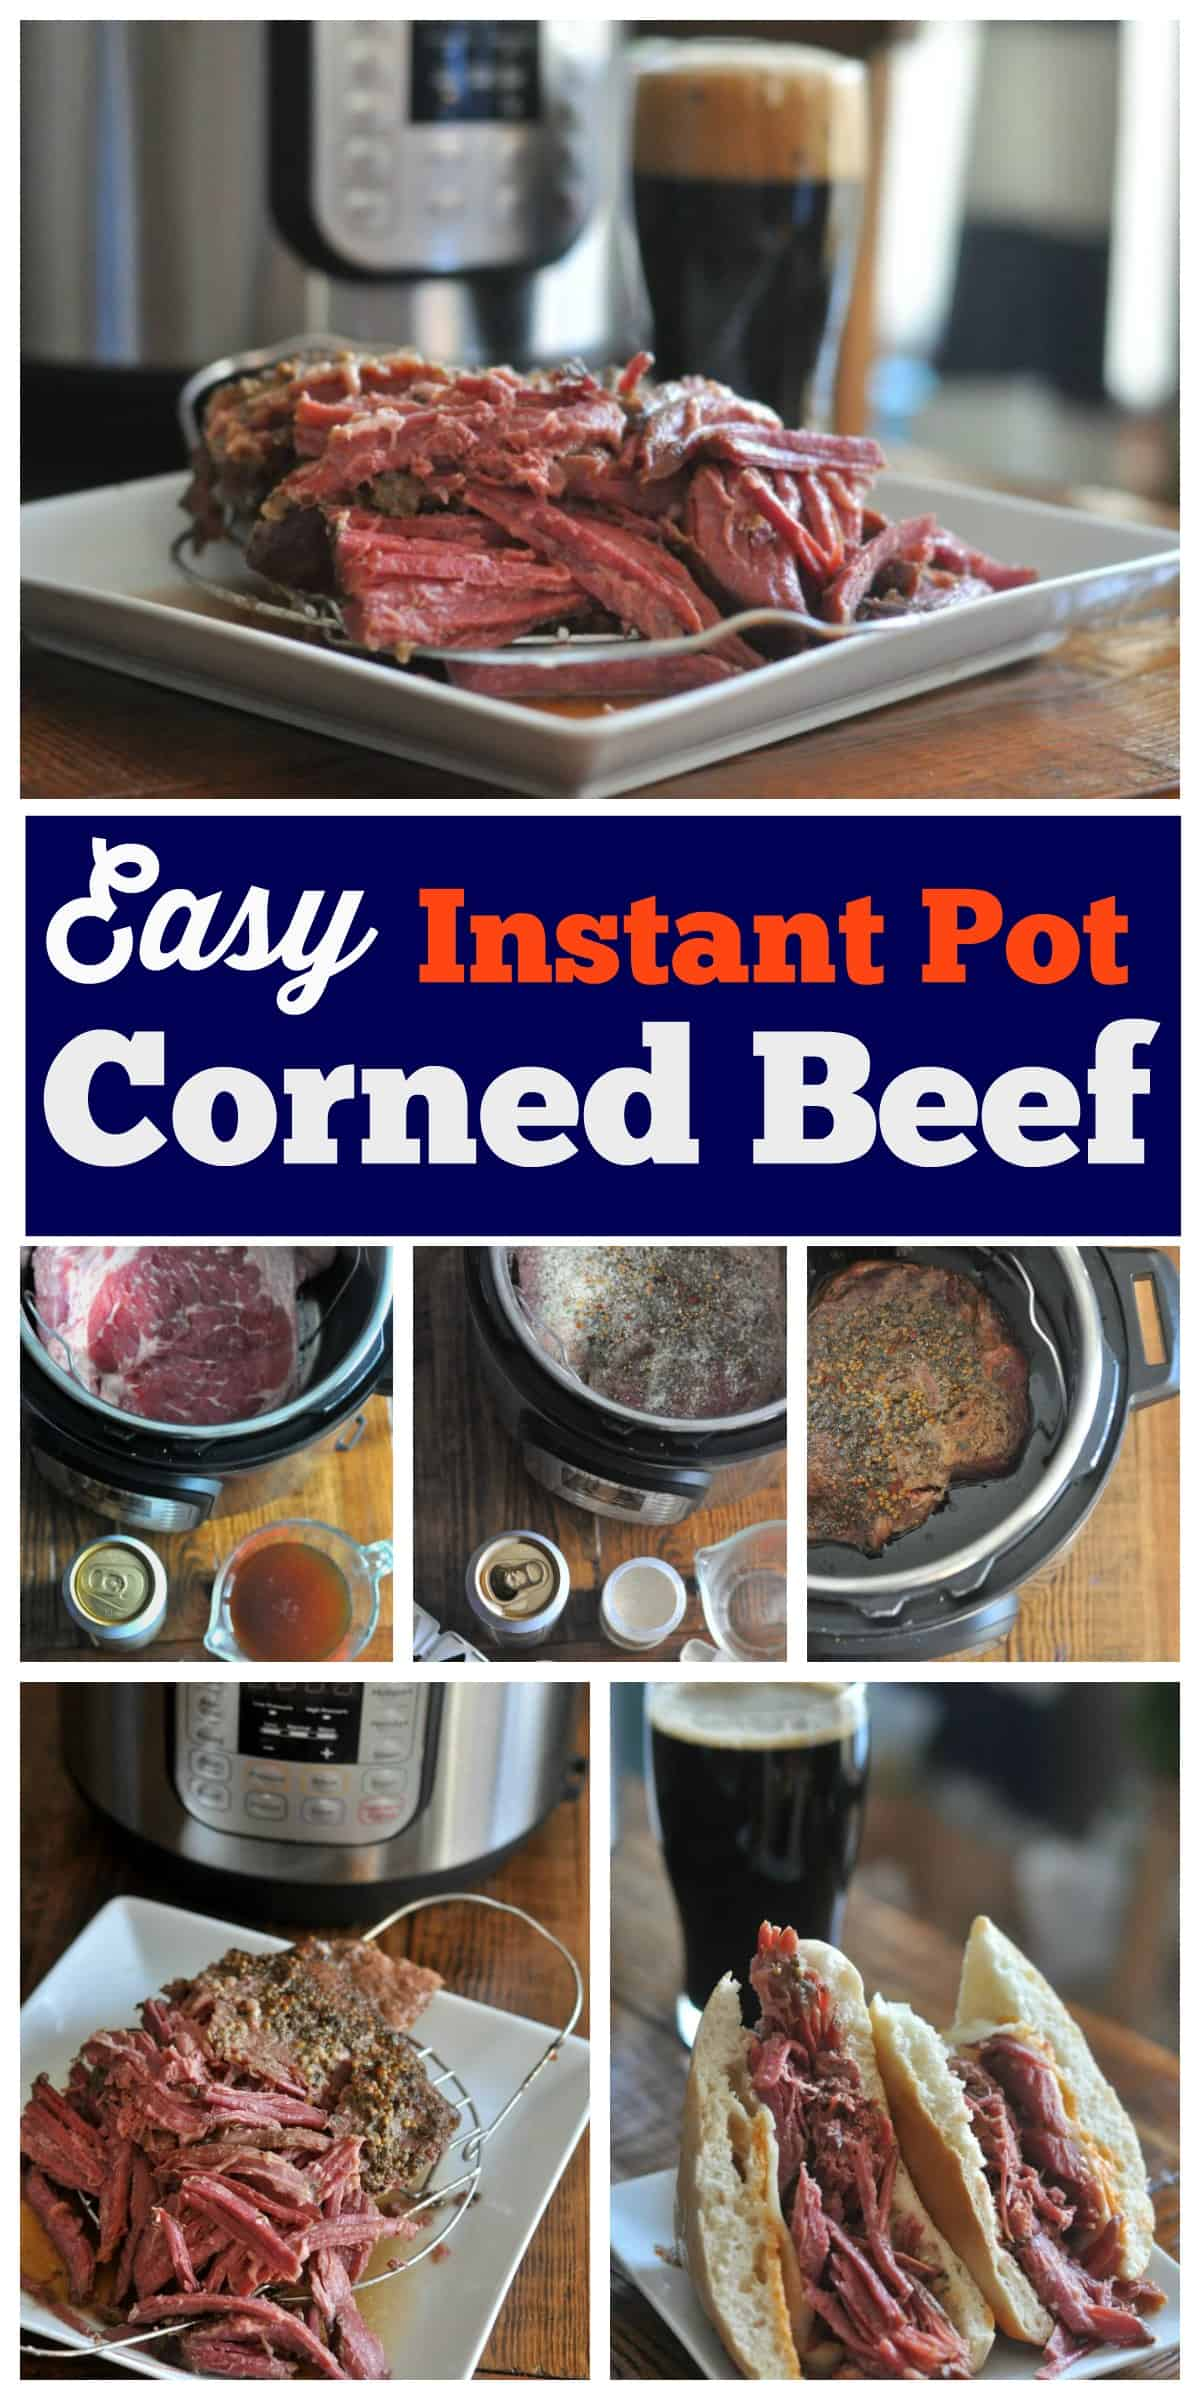 Instant Pot Corned Beef Dining With Alice